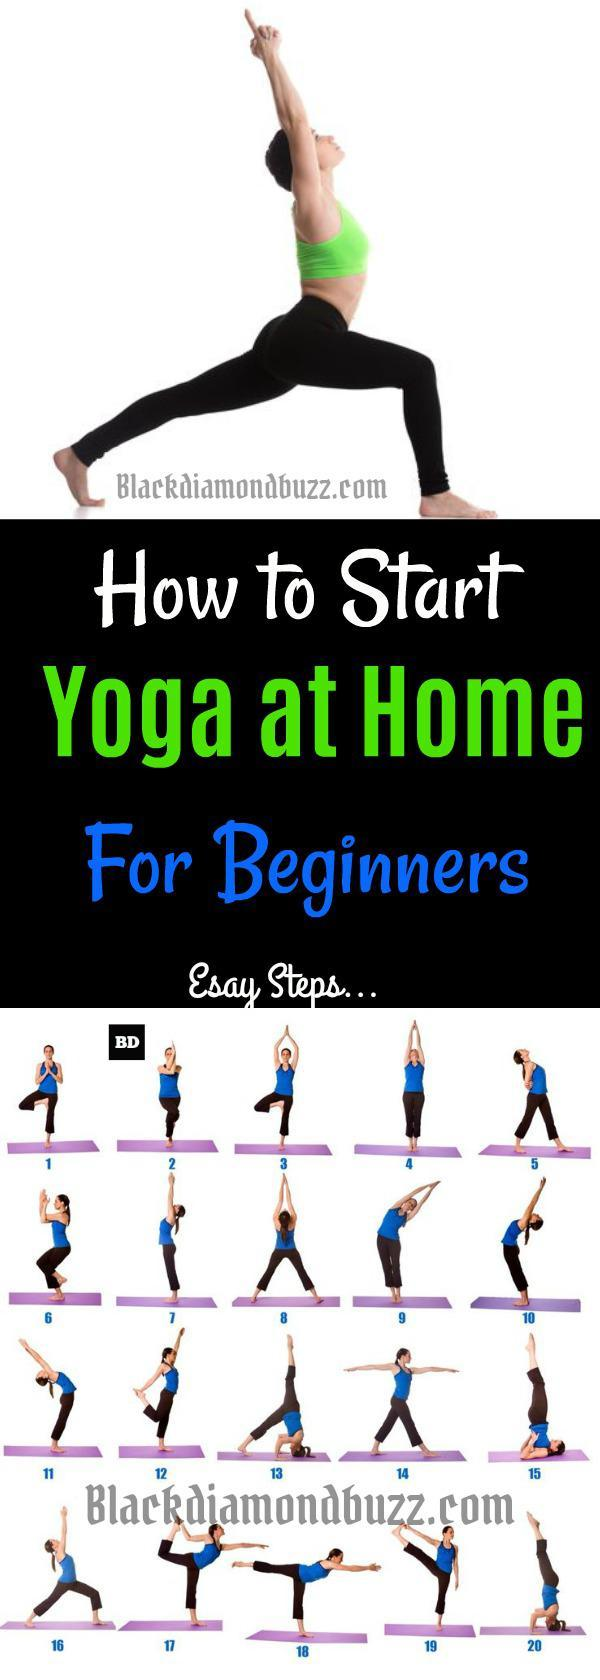 Yoga For Beginners Video Easy Poses And Stretches The Whoot